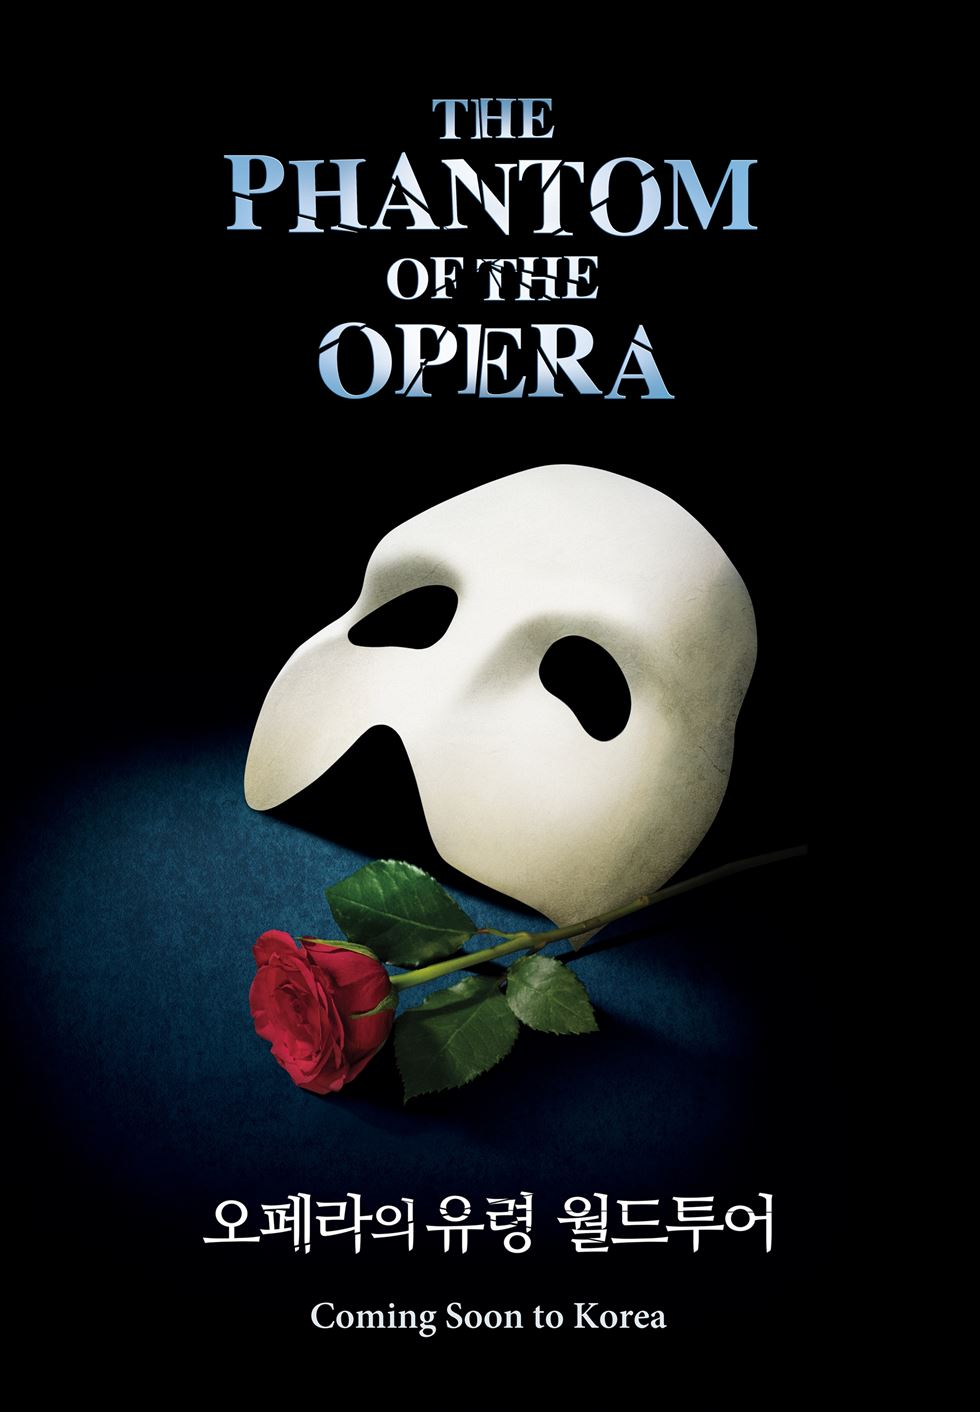 Cast of the international tour of 'The Phantom of the Opera' which will perform in Busan, Seoul and Daegu / Courtesy of S&CO